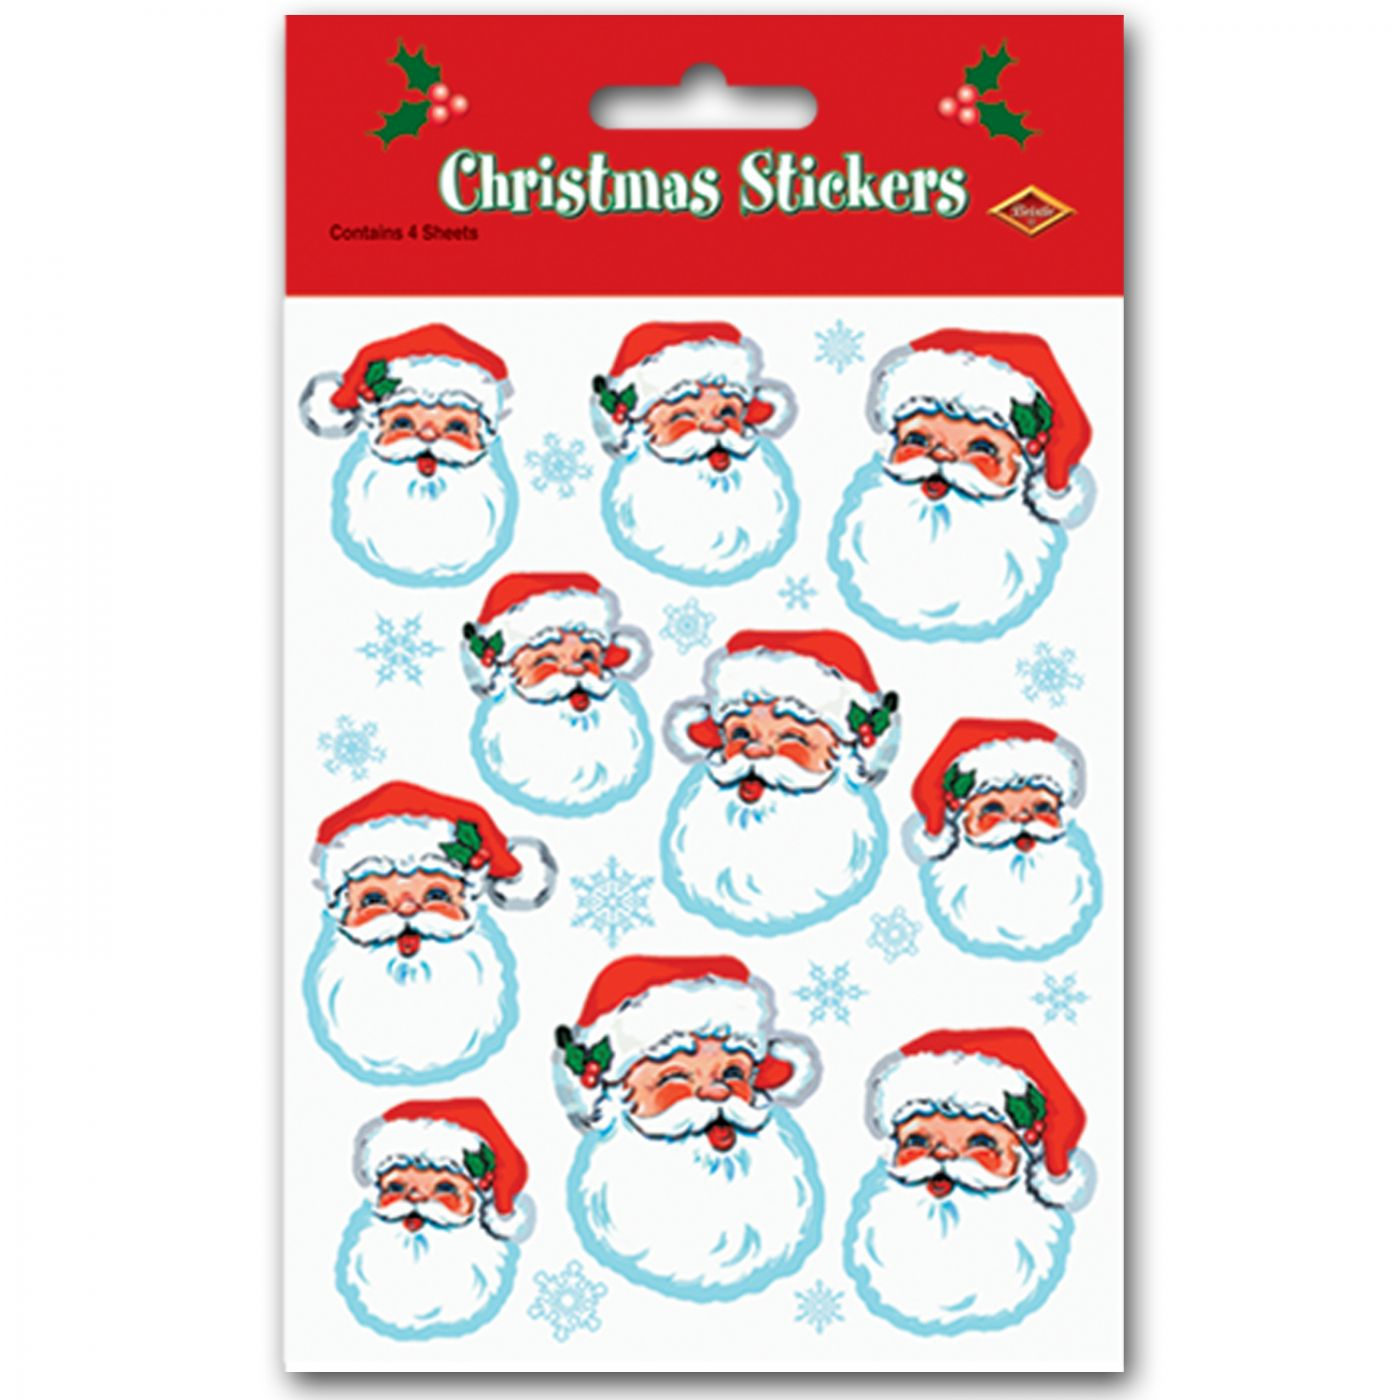 Santa Face Stickers image